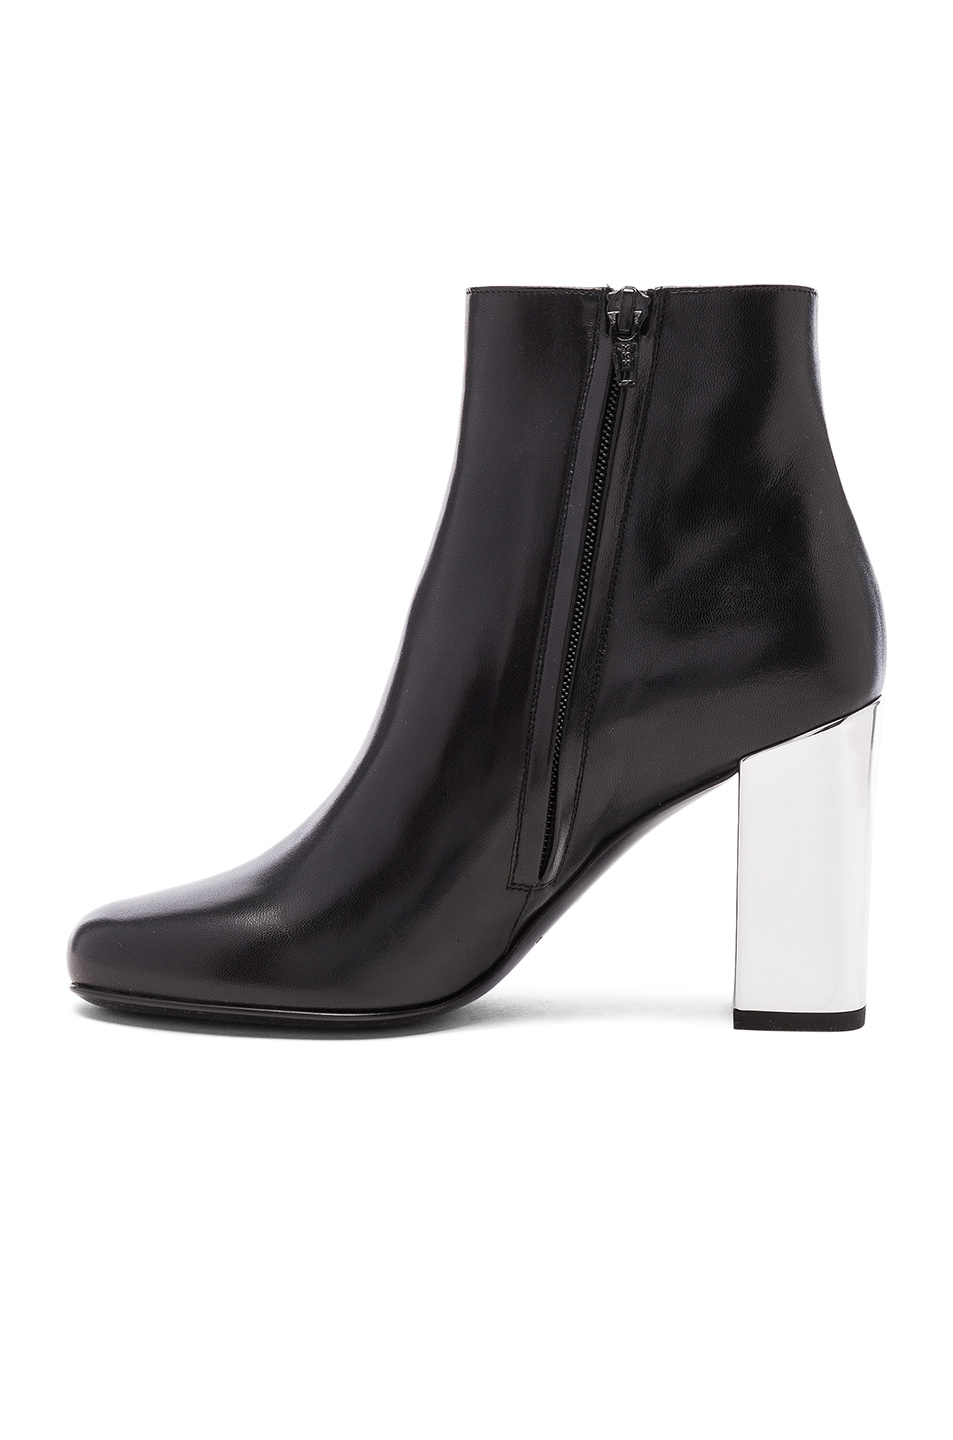 Image 5 of Saint Laurent Leather Babies Pin Boots in Black & Silver